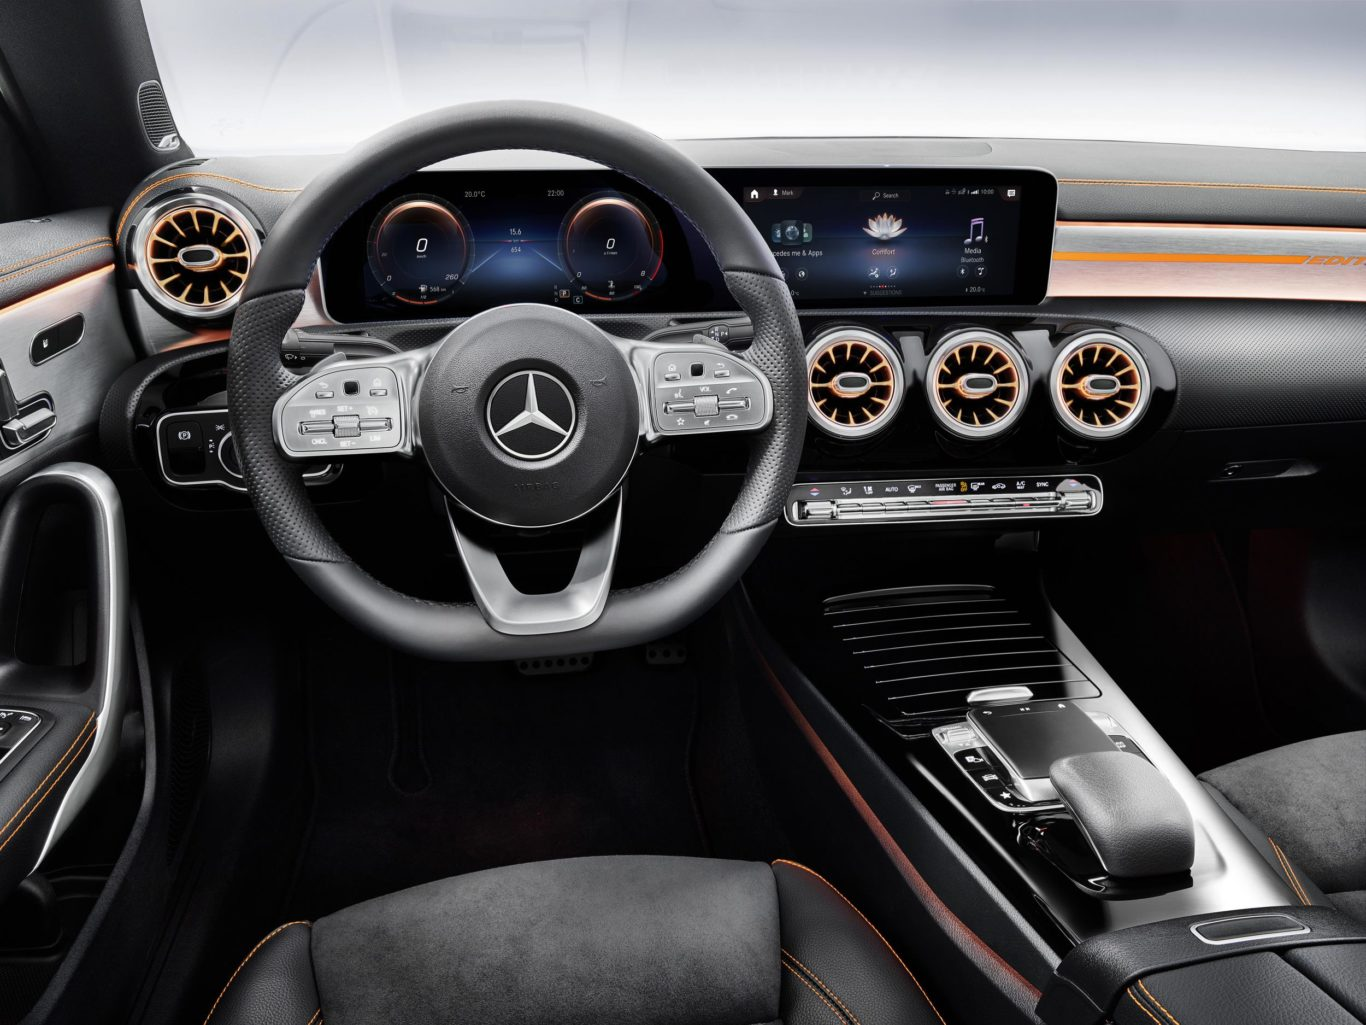 Mercedes-Benz India sales rises 1.4% to 15,538 units in 2018